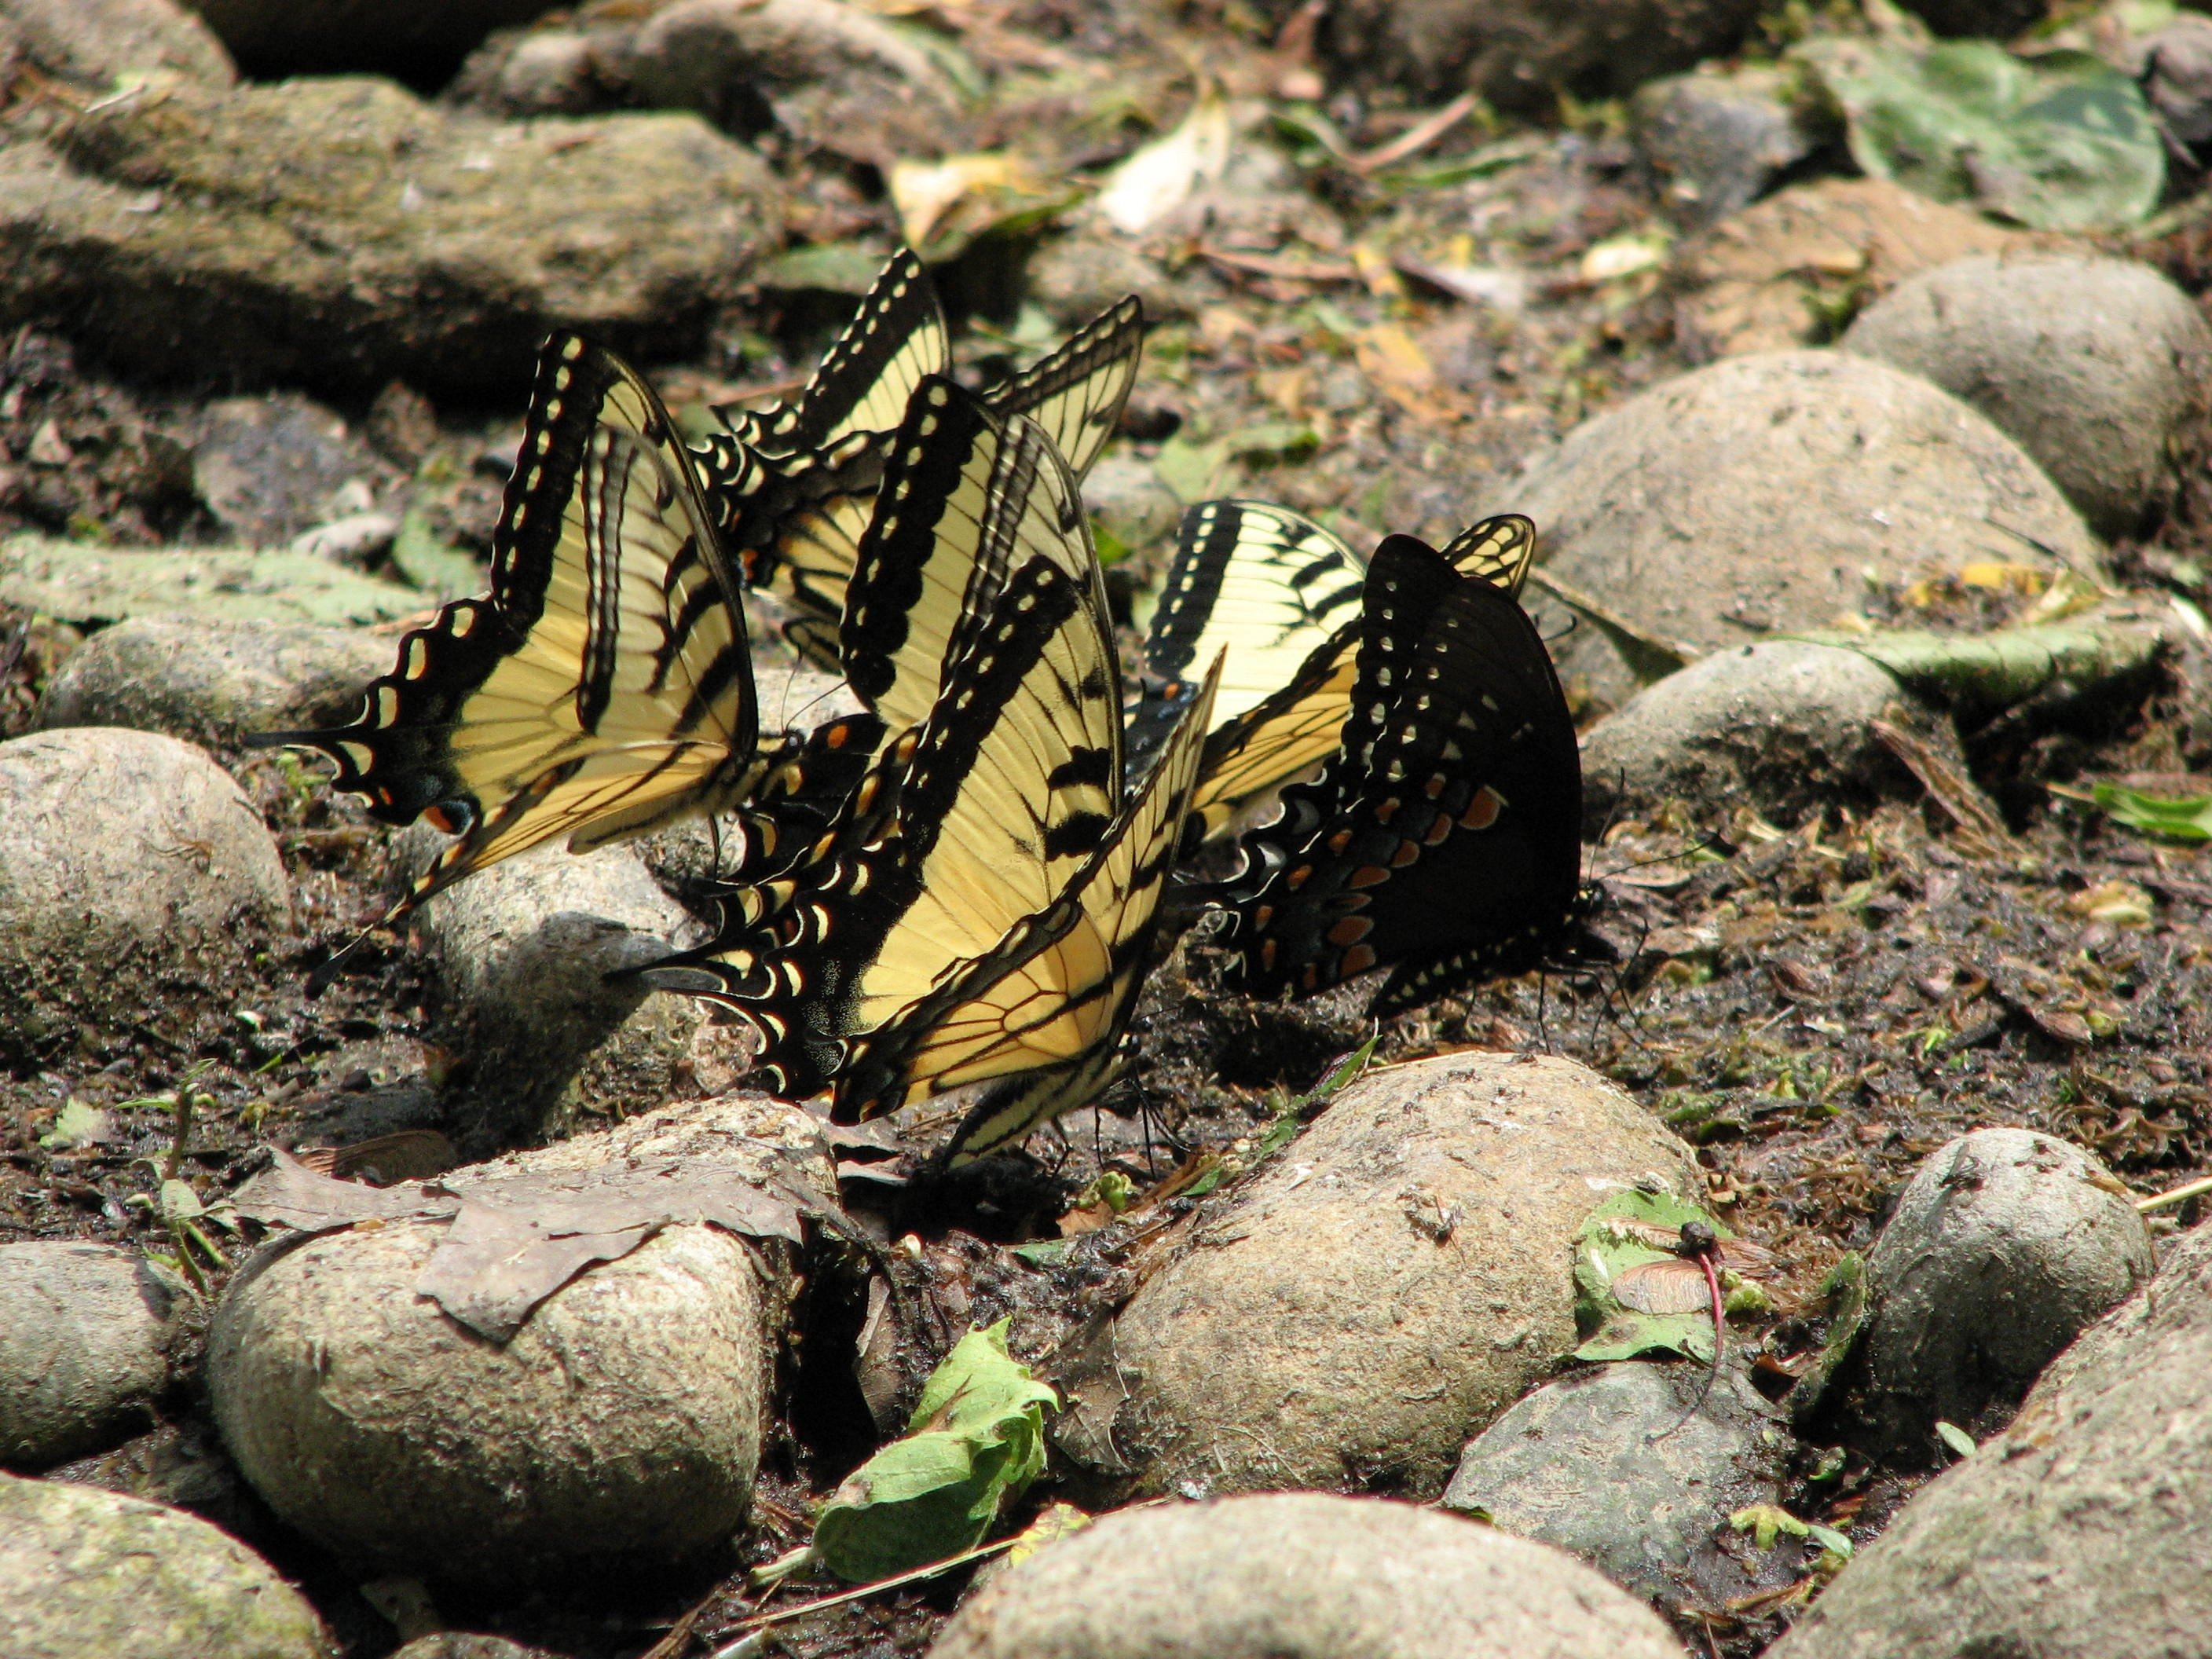 Swallow tailed butterflies by the Ramapo River in the Hamlet of Ramapo